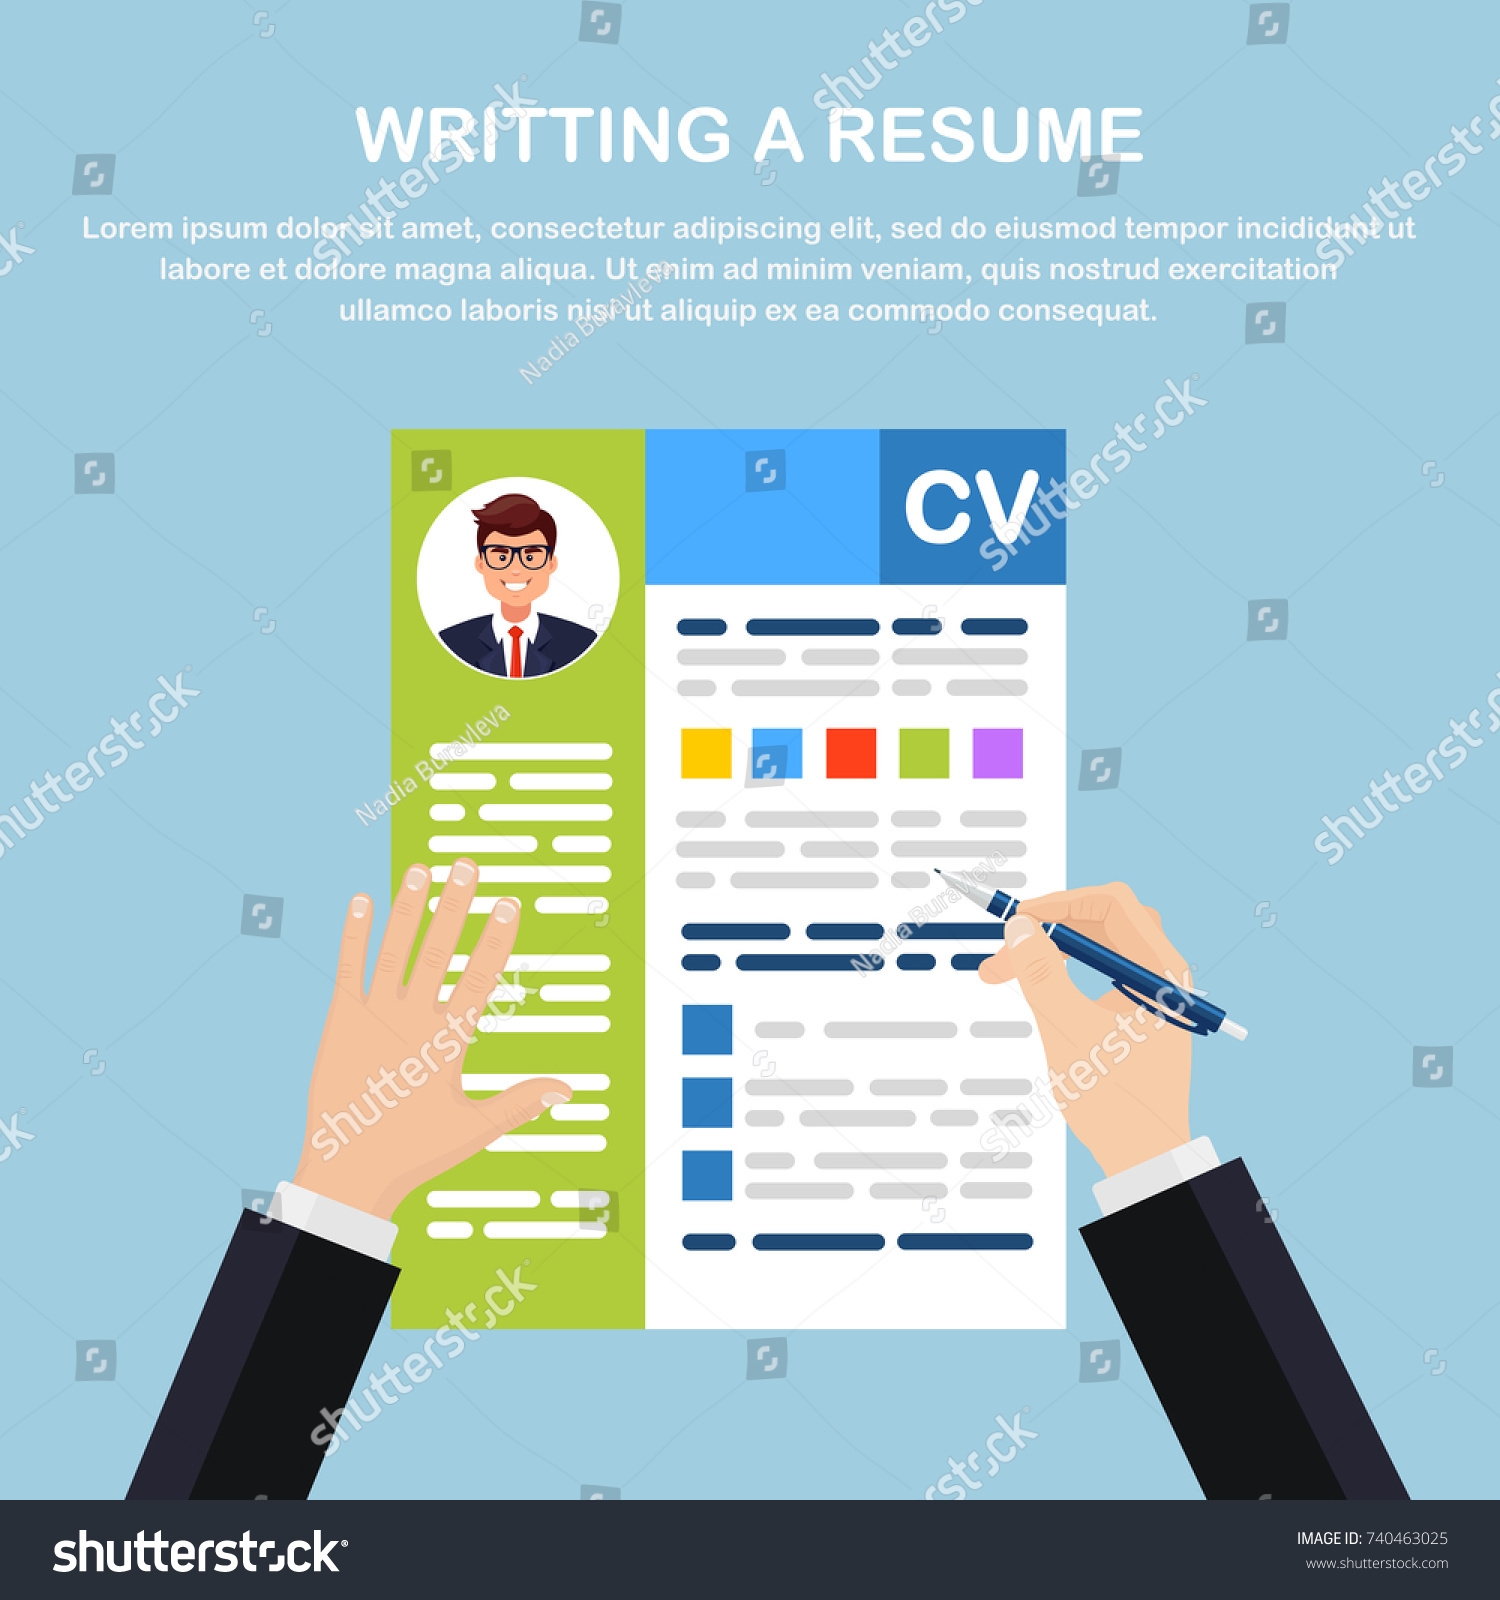 writing resume cv application business man stock vector 740463025